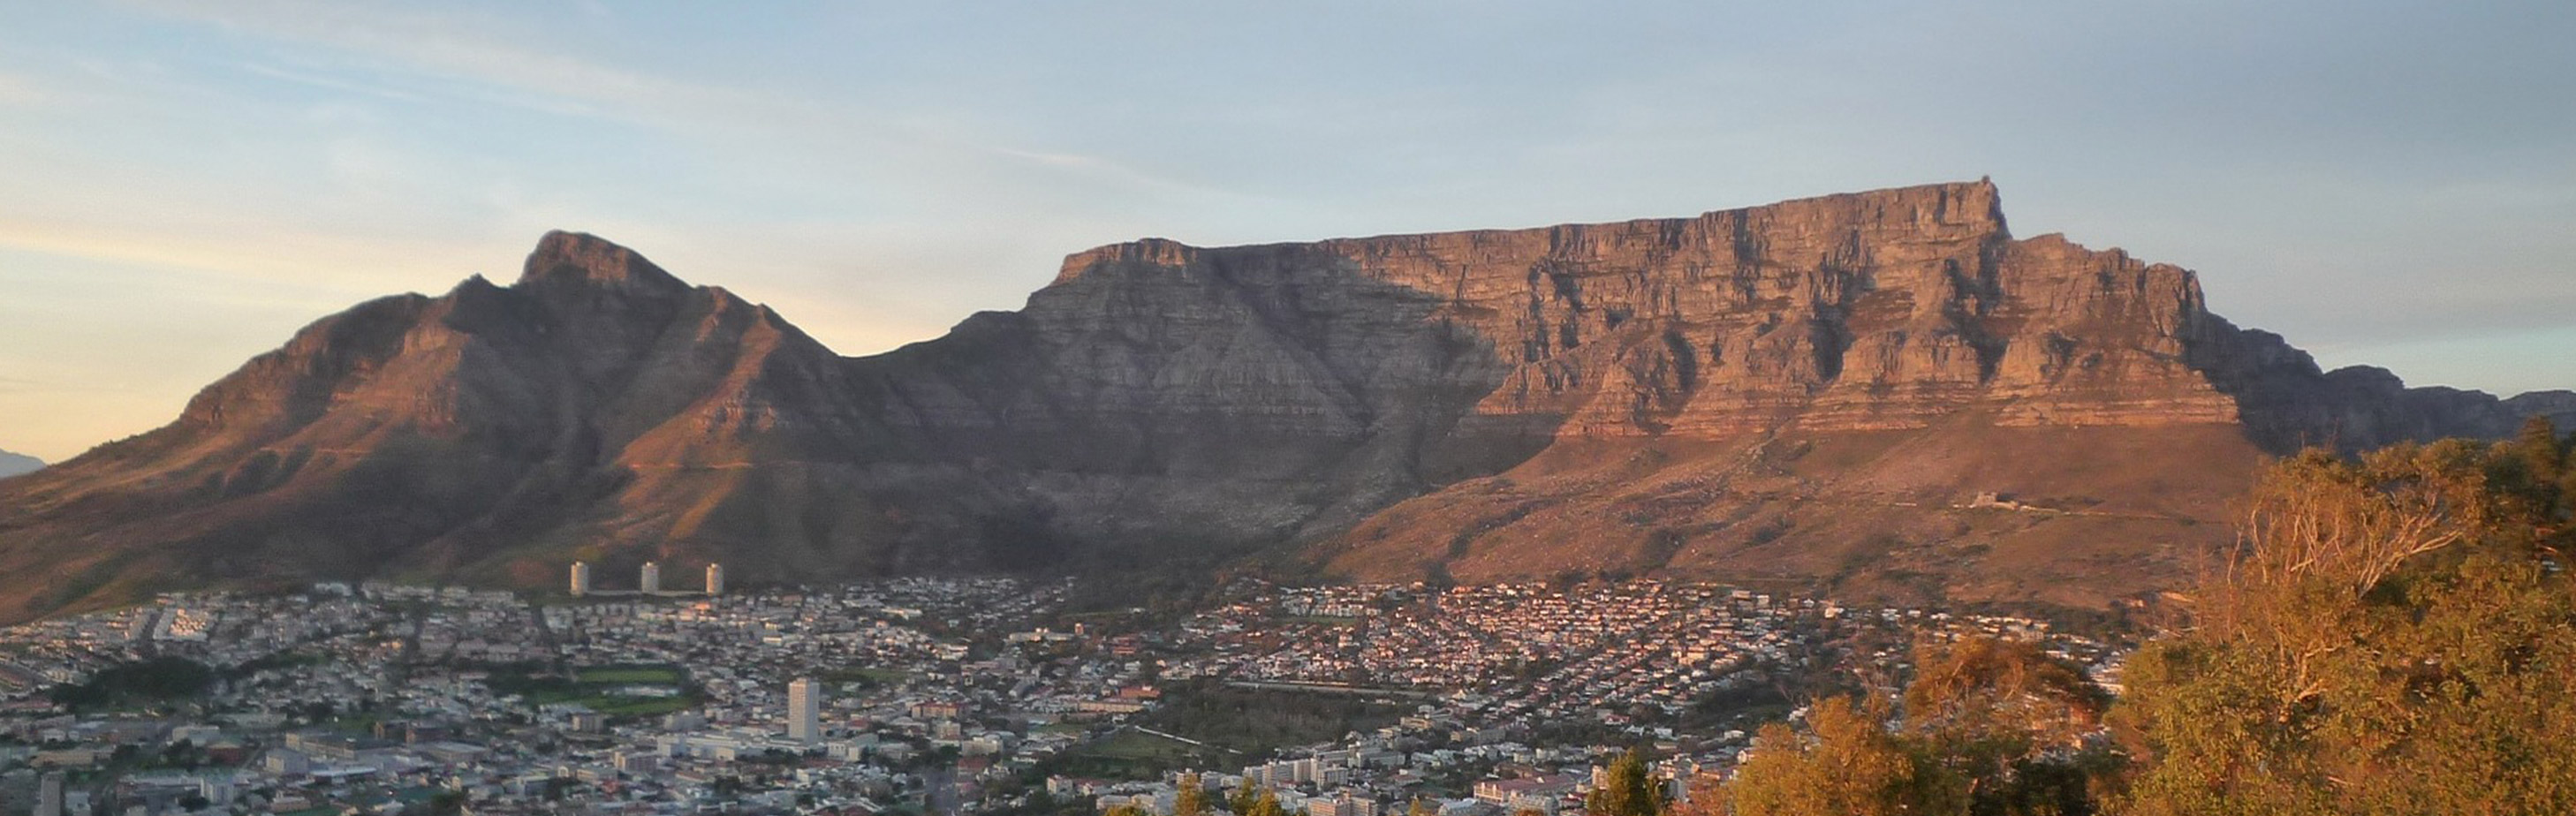 KARIN'S PRACTICE IS NESTLED AT THE FOOT OF TABLE MOUNTAIN